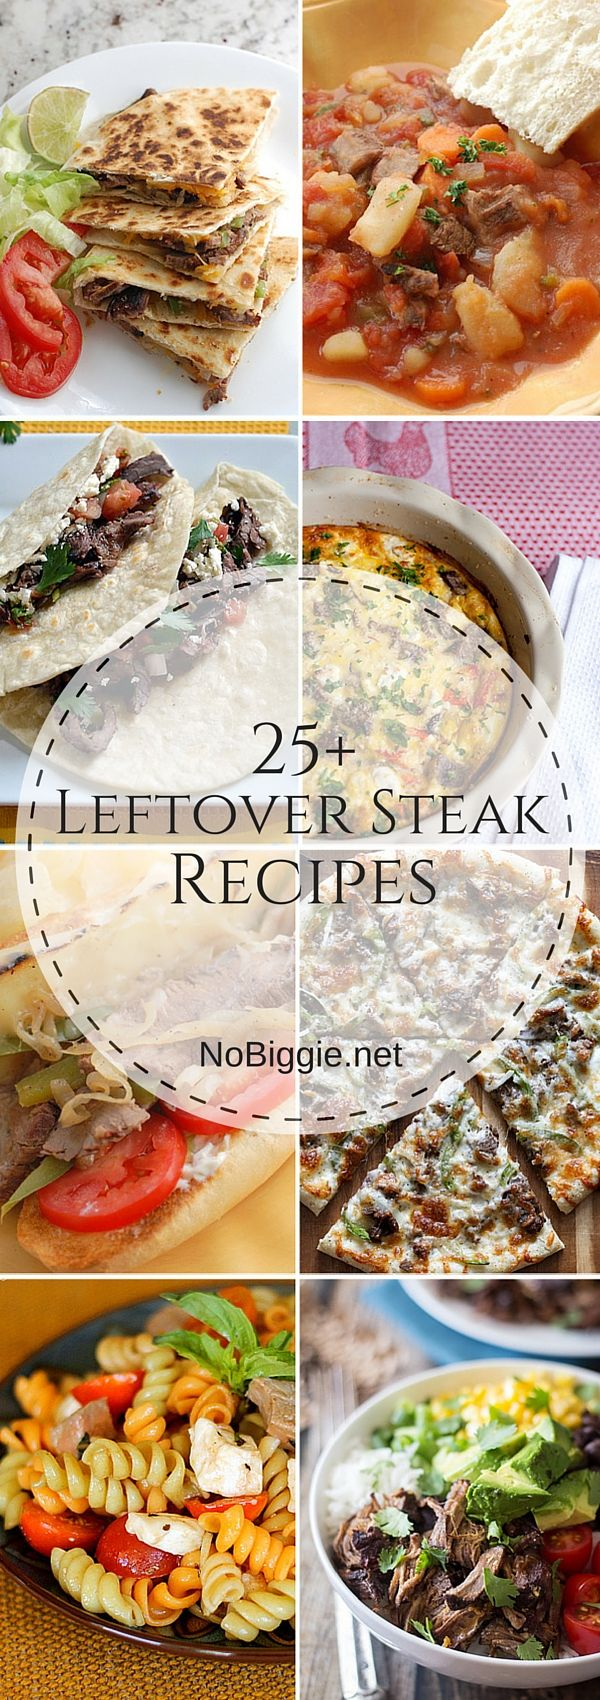 25+ Leftover Steak Recipes | NoBiggie.net